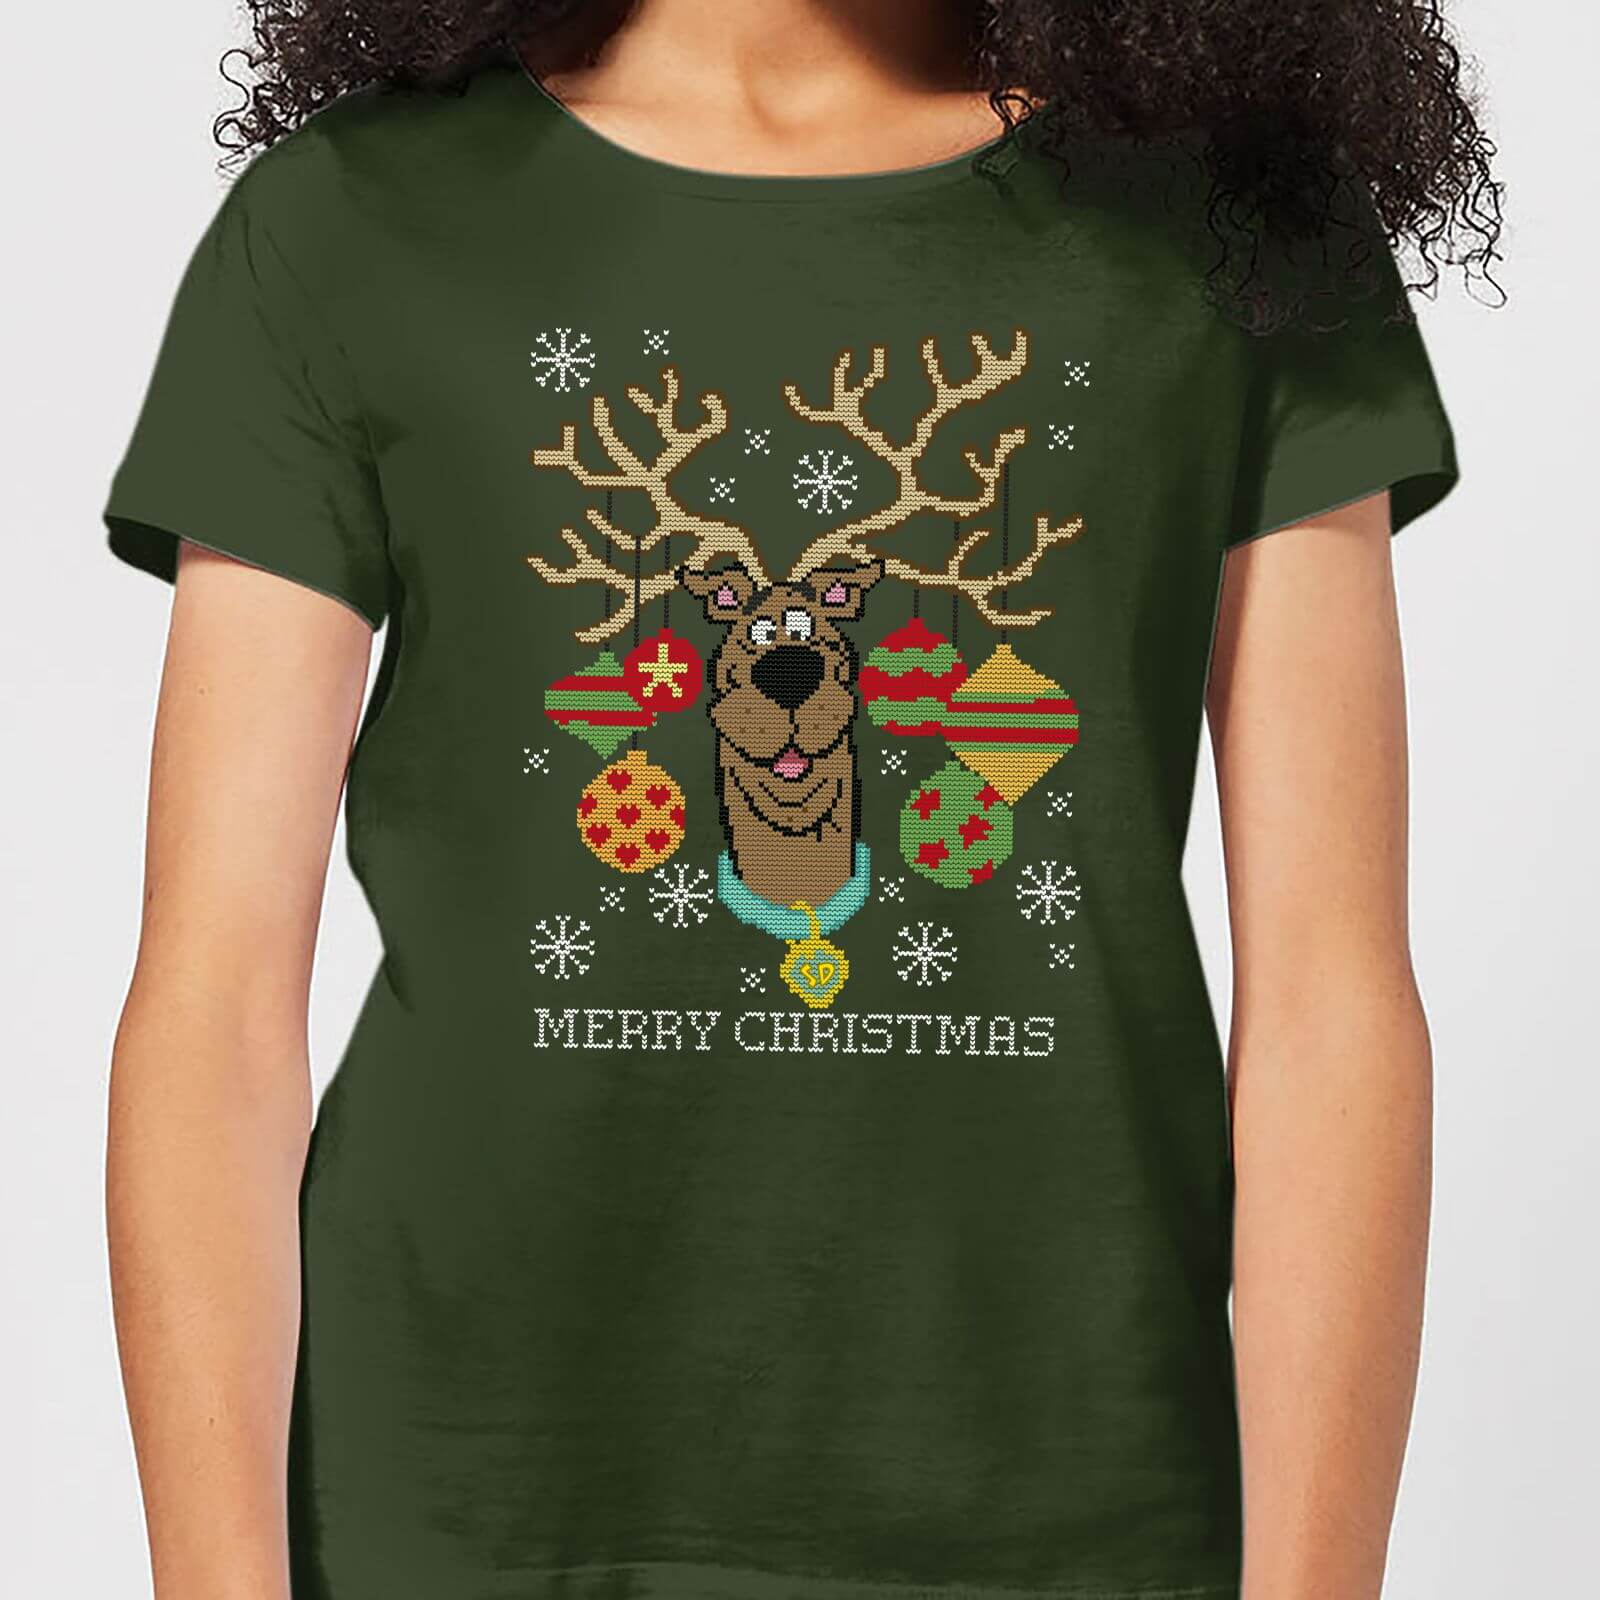 Scooby Doo Women's Christmas T-Shirt - Forest Green - M - Forest Green de Scooby Doo